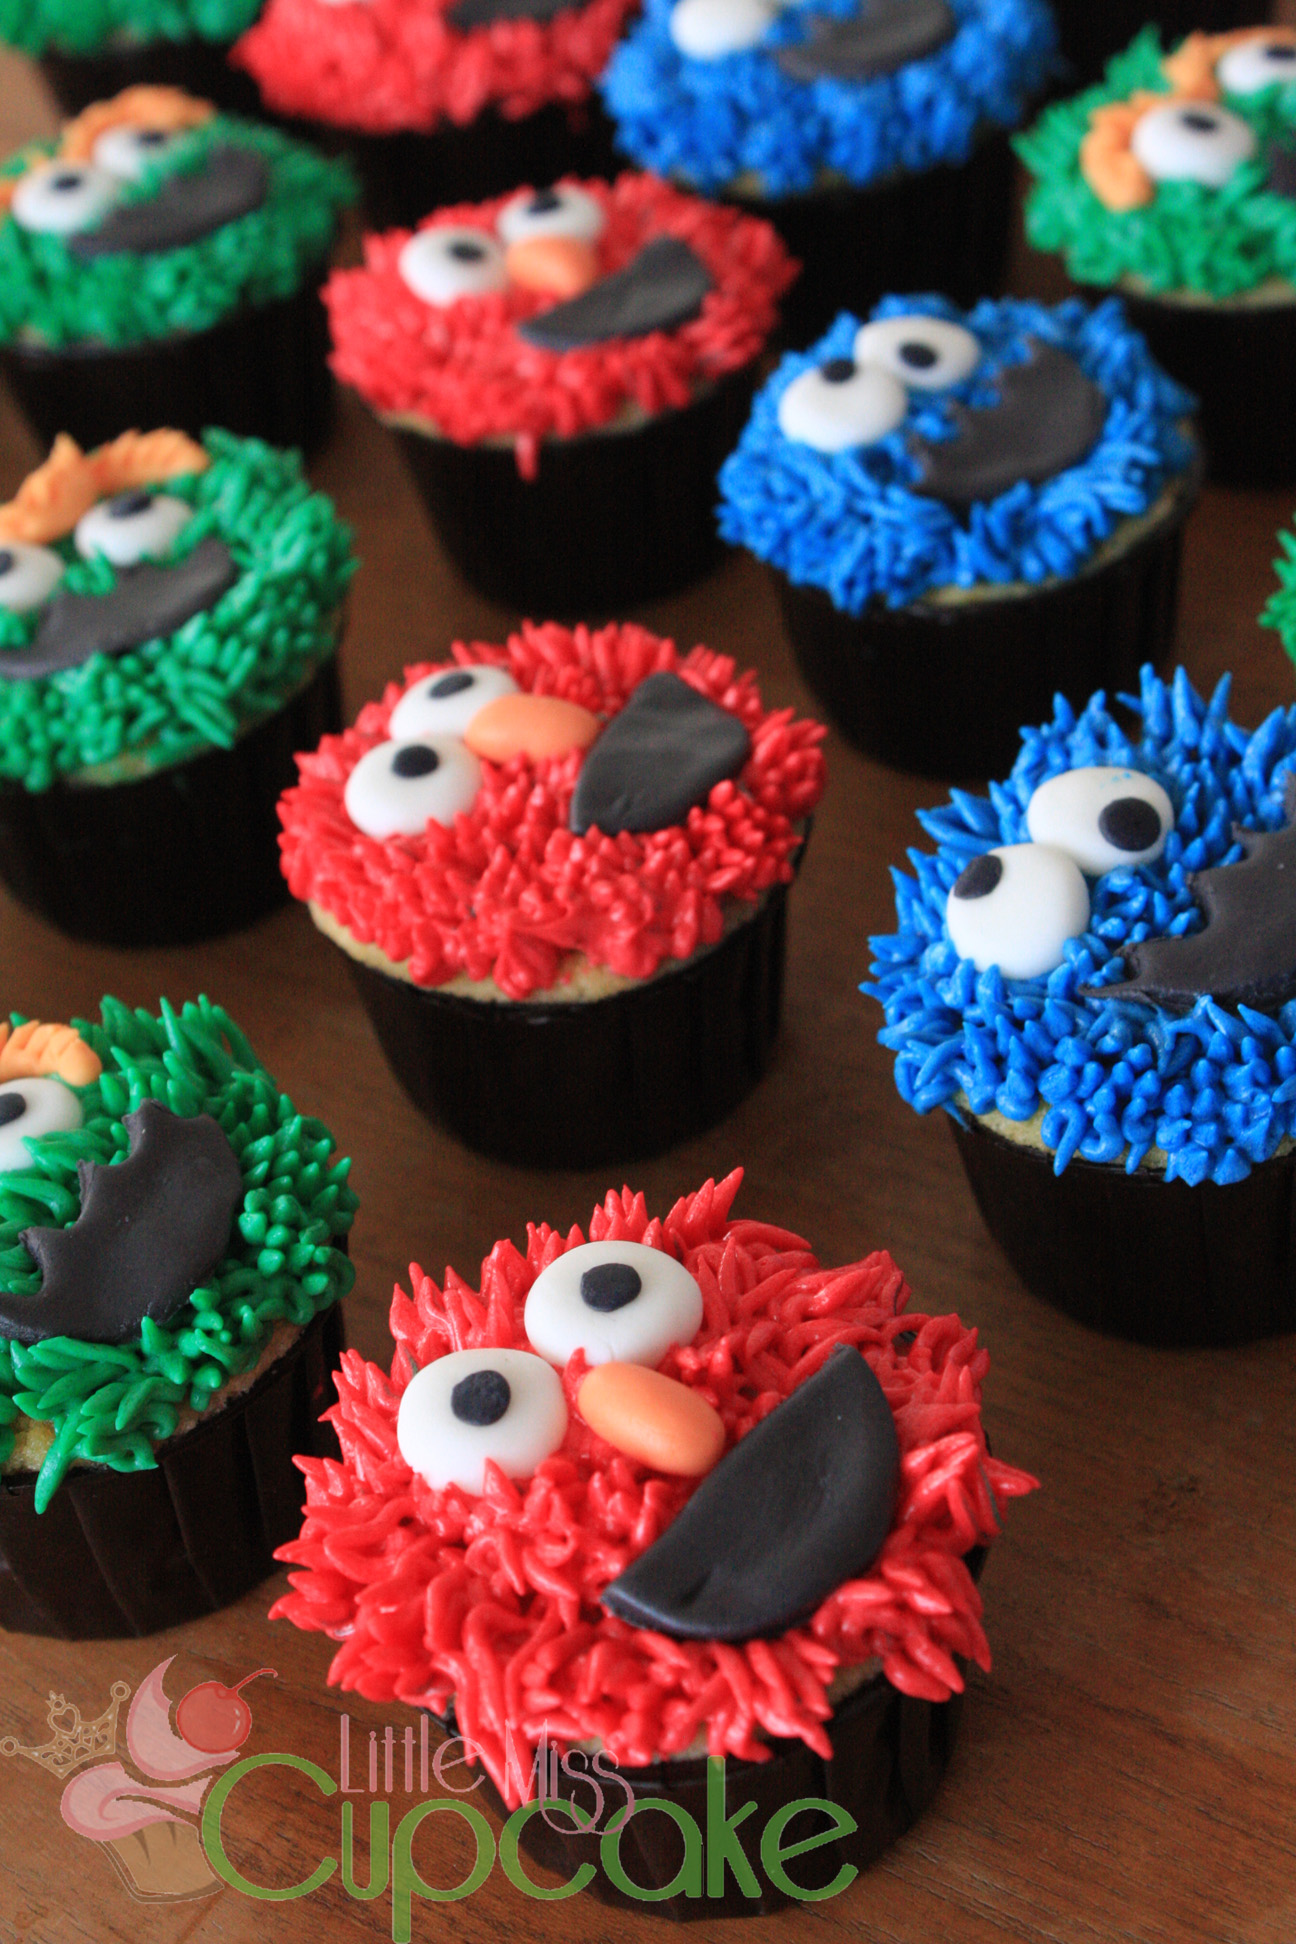 Elmo Little Miss Cupcake